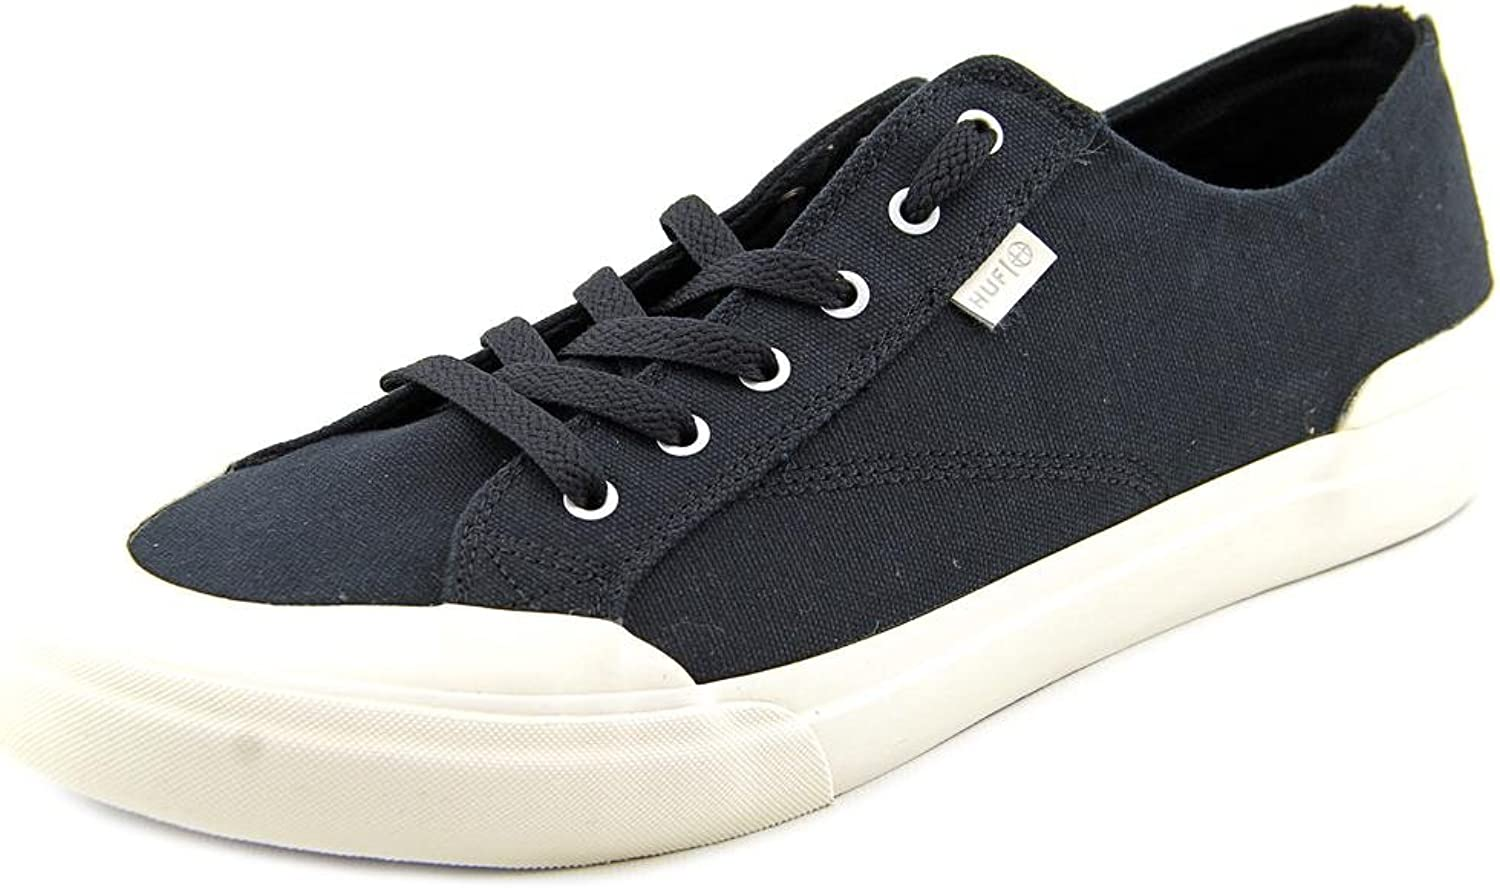 Huf Classic Lo Mens Black Canvas Lace Up Sneakers shoes 12